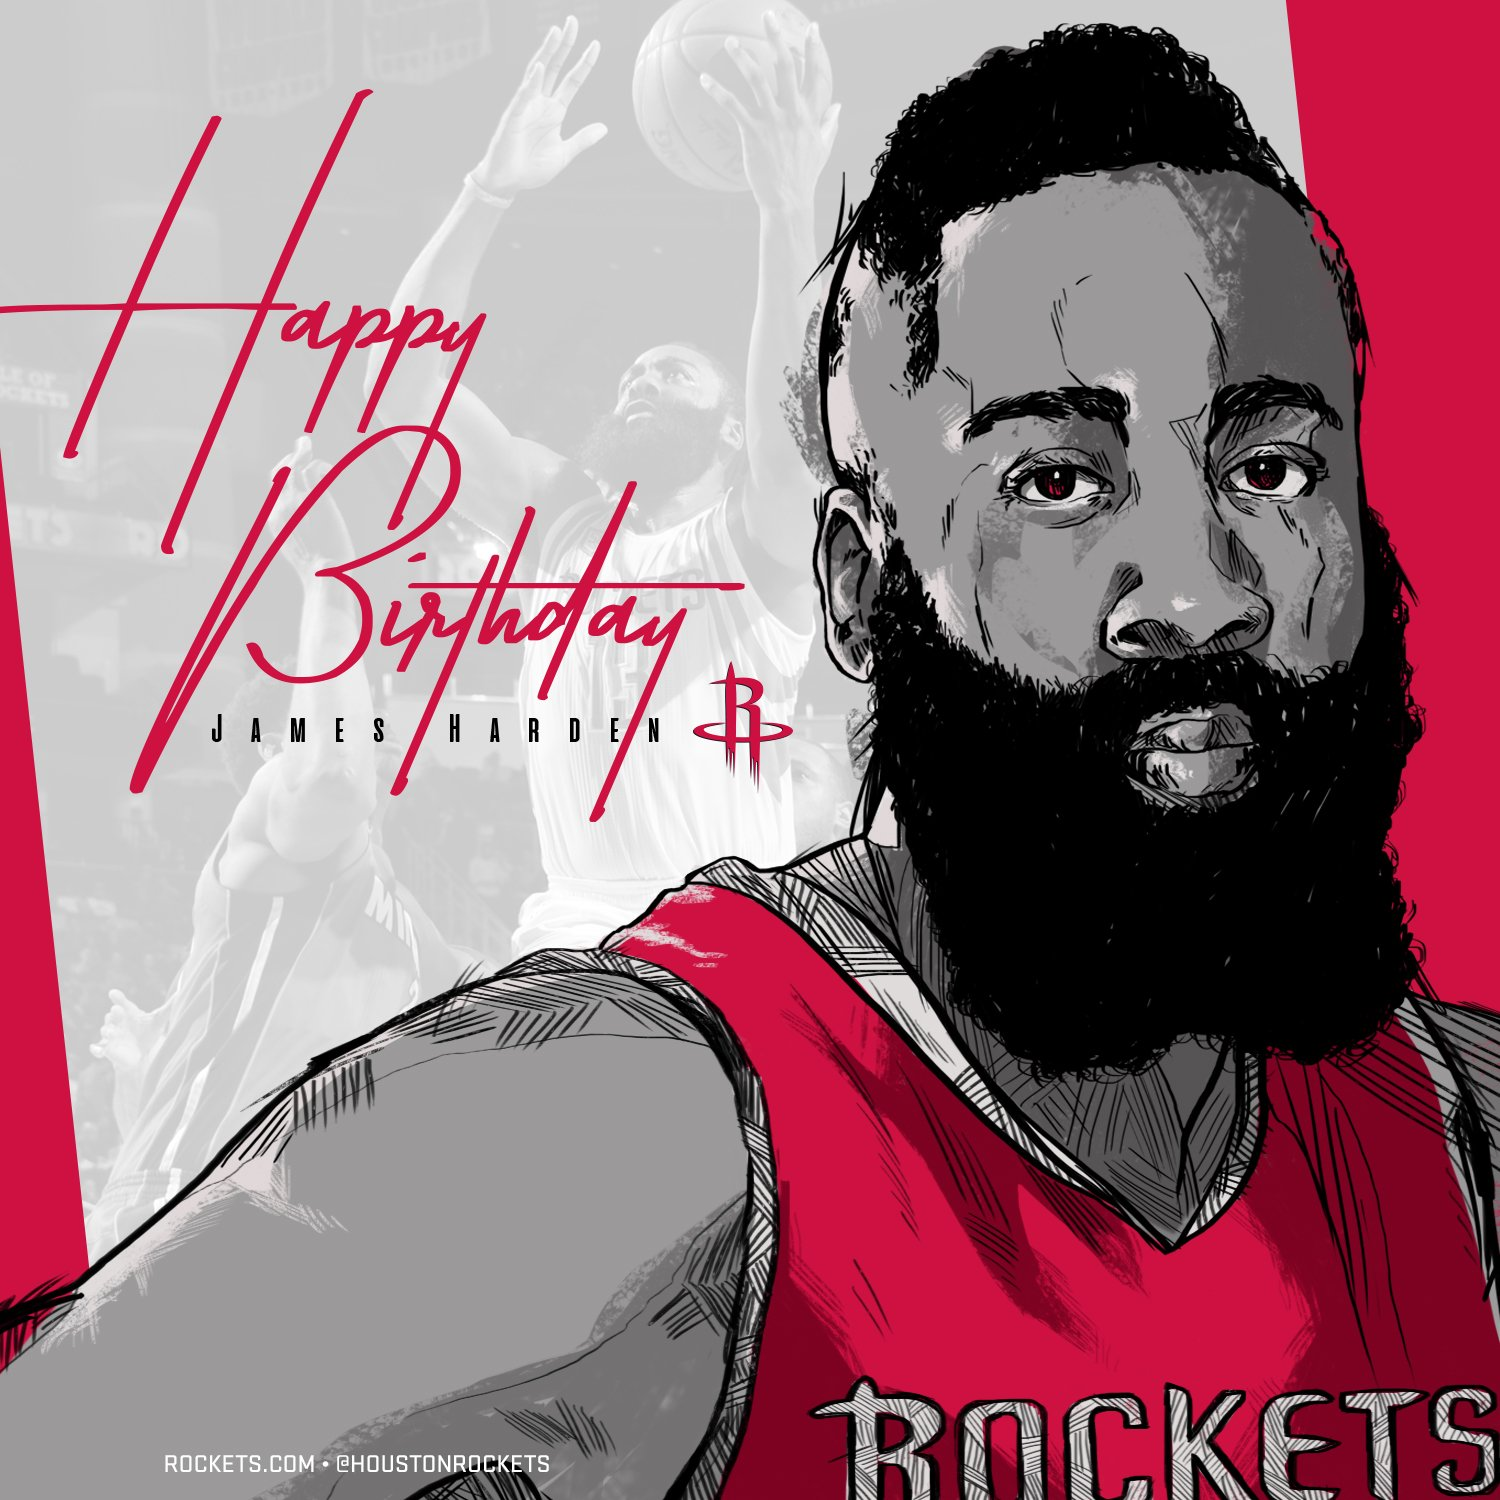 RT to wish a very #HappyBirthday to the one and only, #TheBeard, @JHarden13!!! ������ https://t.co/3UqR33ehnI